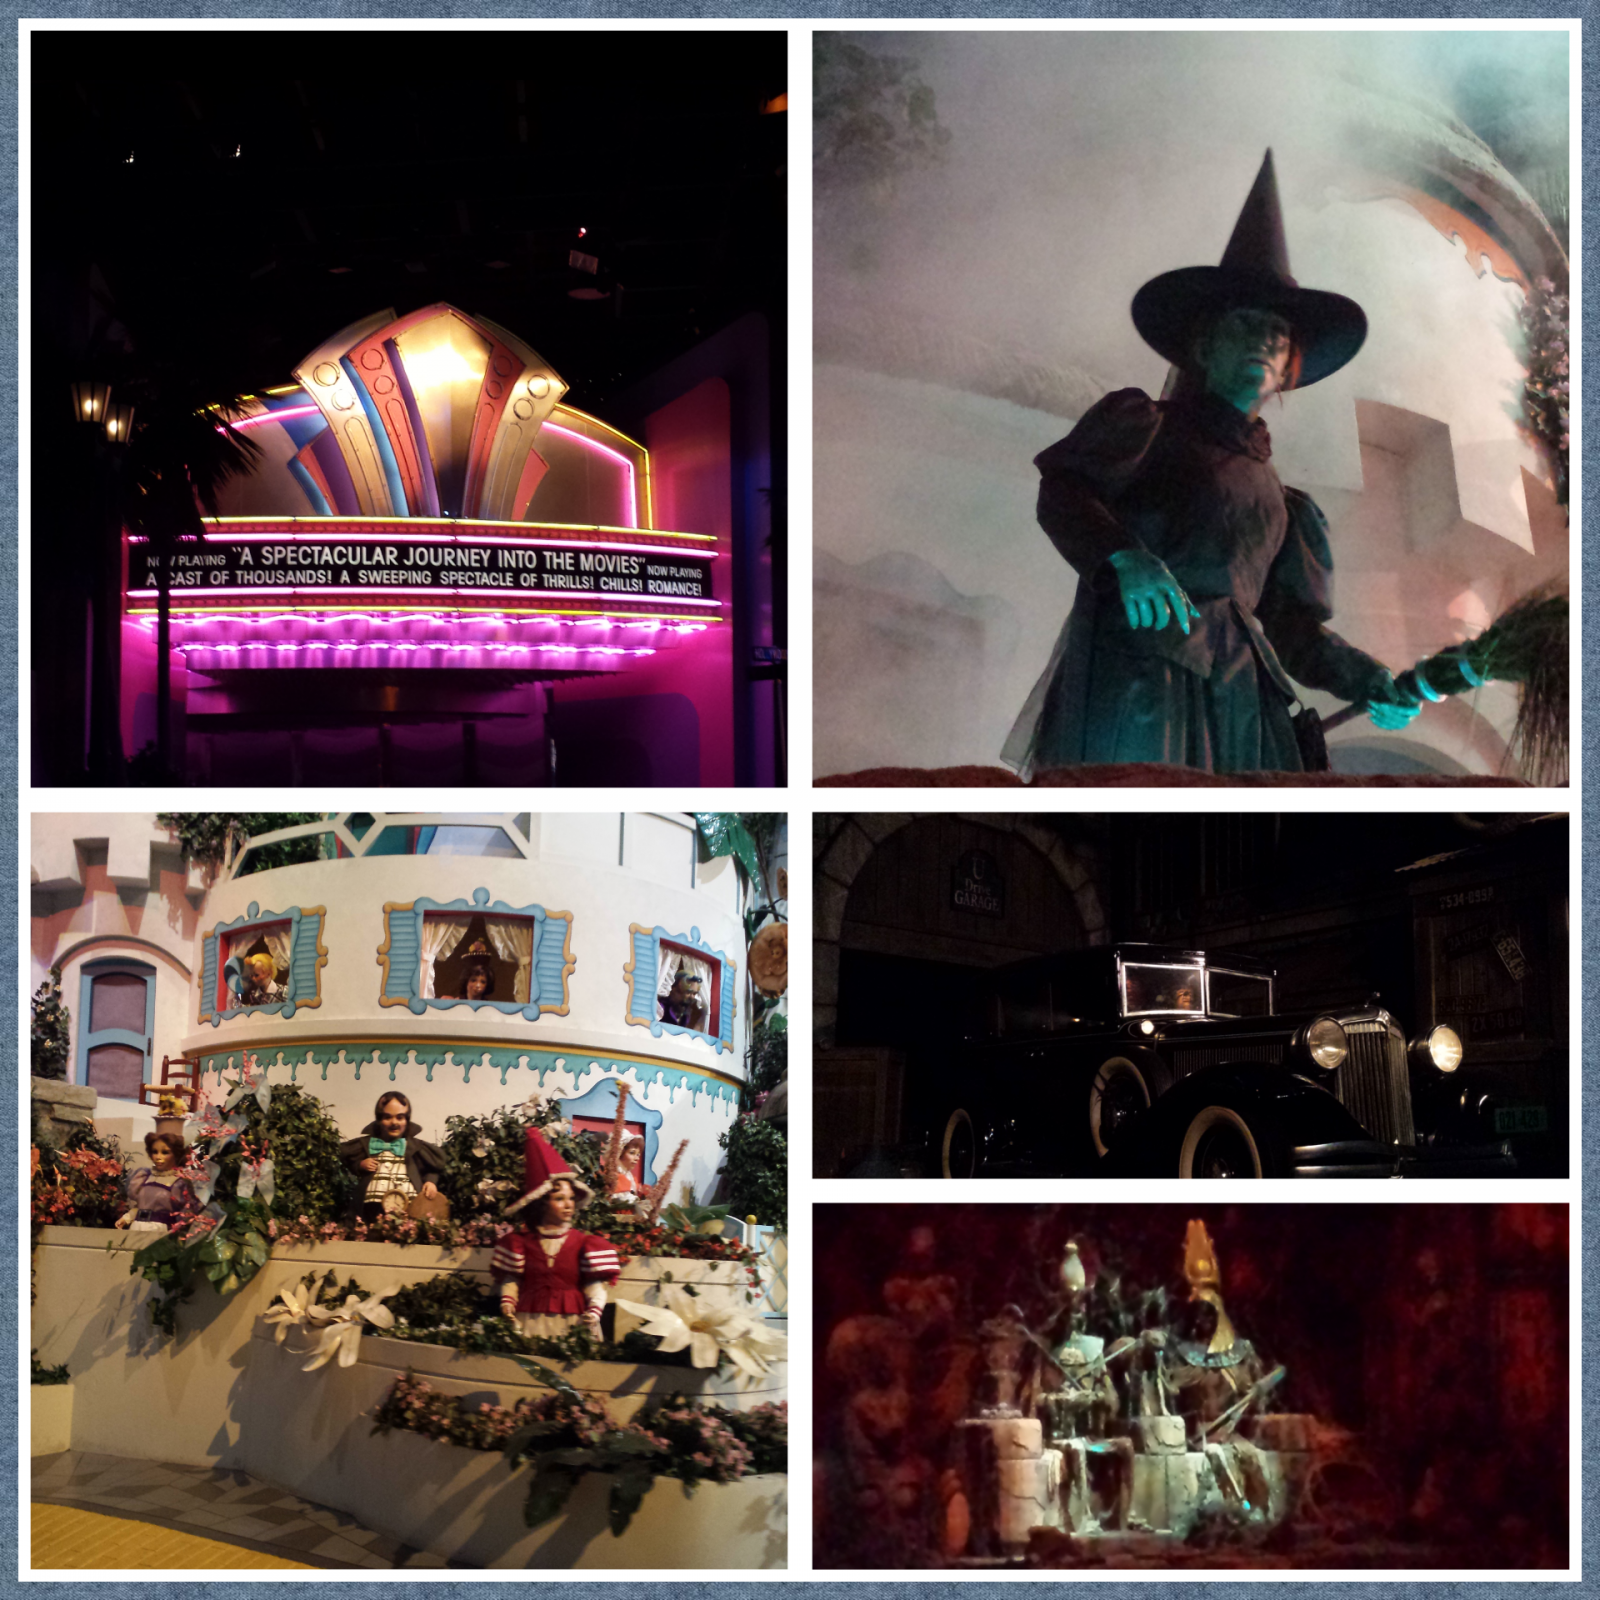 The Great Movie Ride – Disney's Hollywood Studios